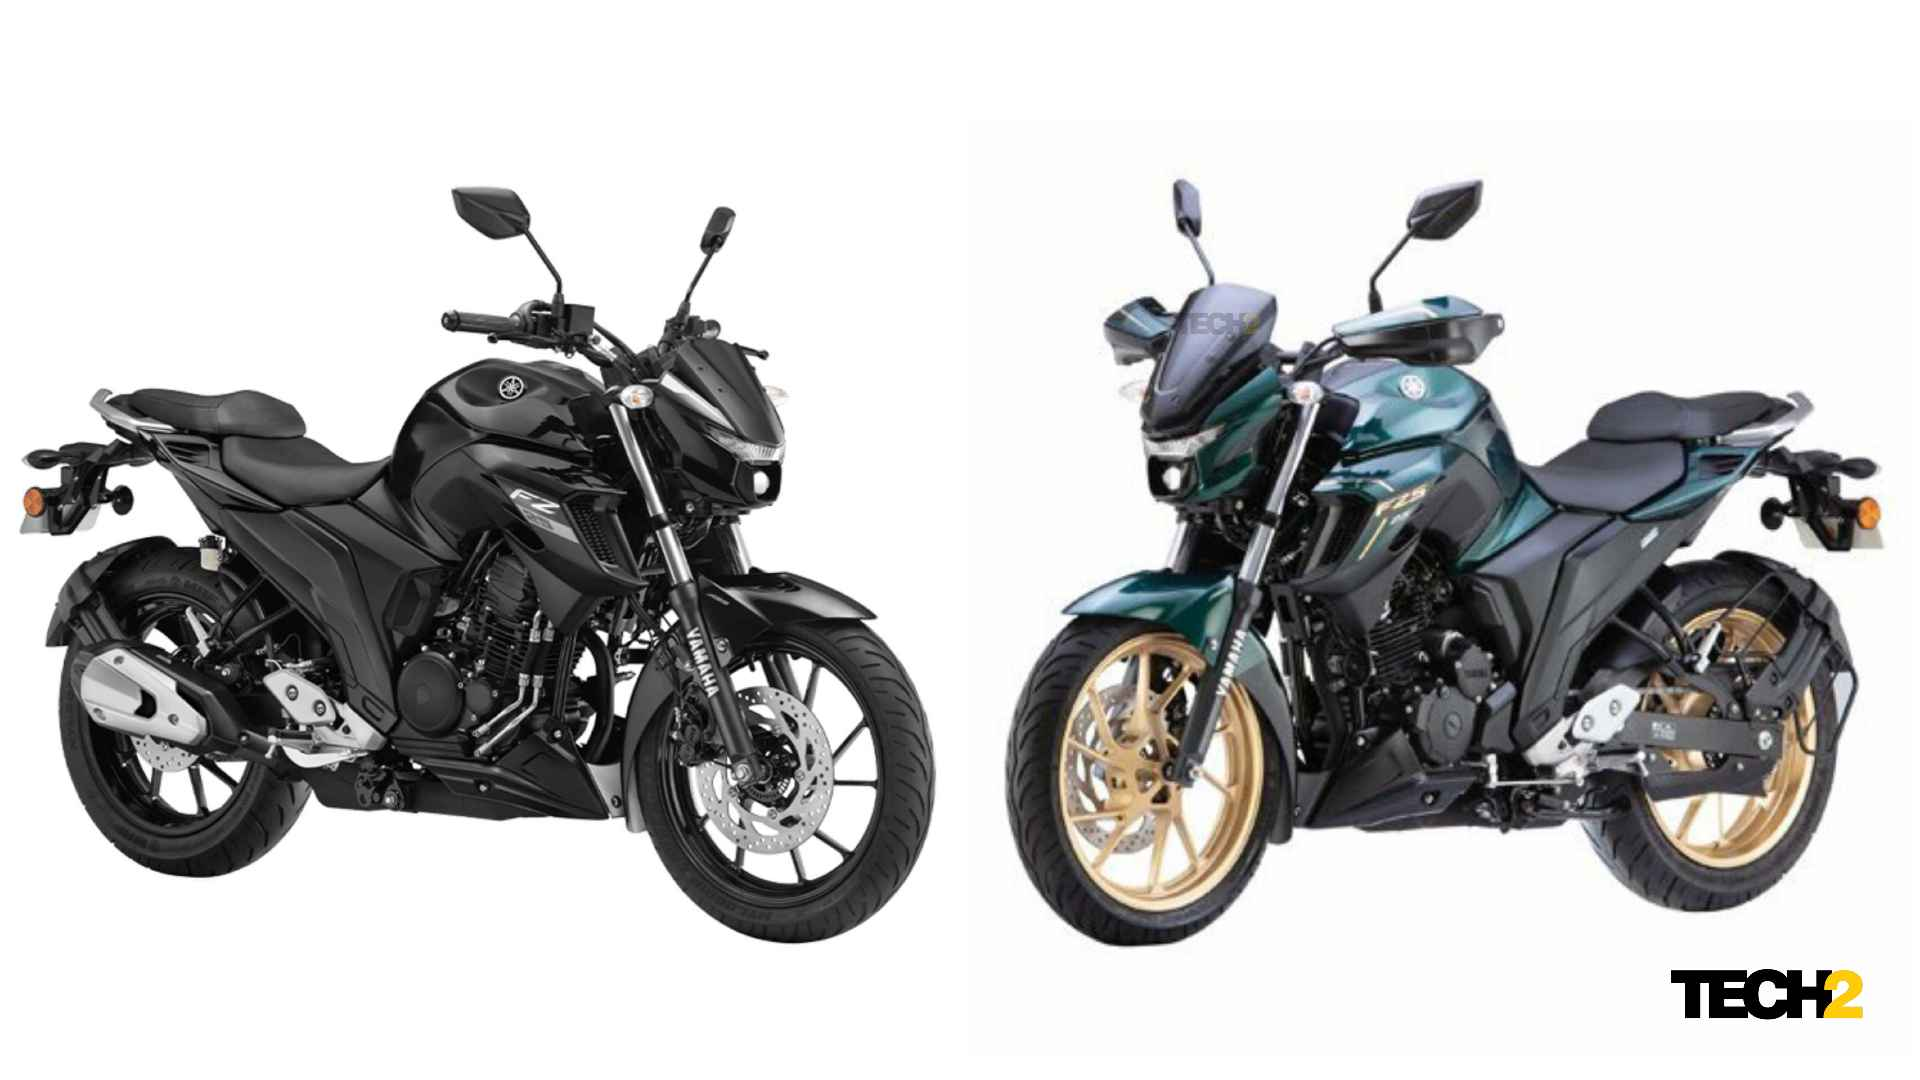 With this price drop, the Yamaha FZ25 and FZS 25 are now the most affordable 250 cc motorcycles in the country by a big margin. Image: Yamaha/Tech2